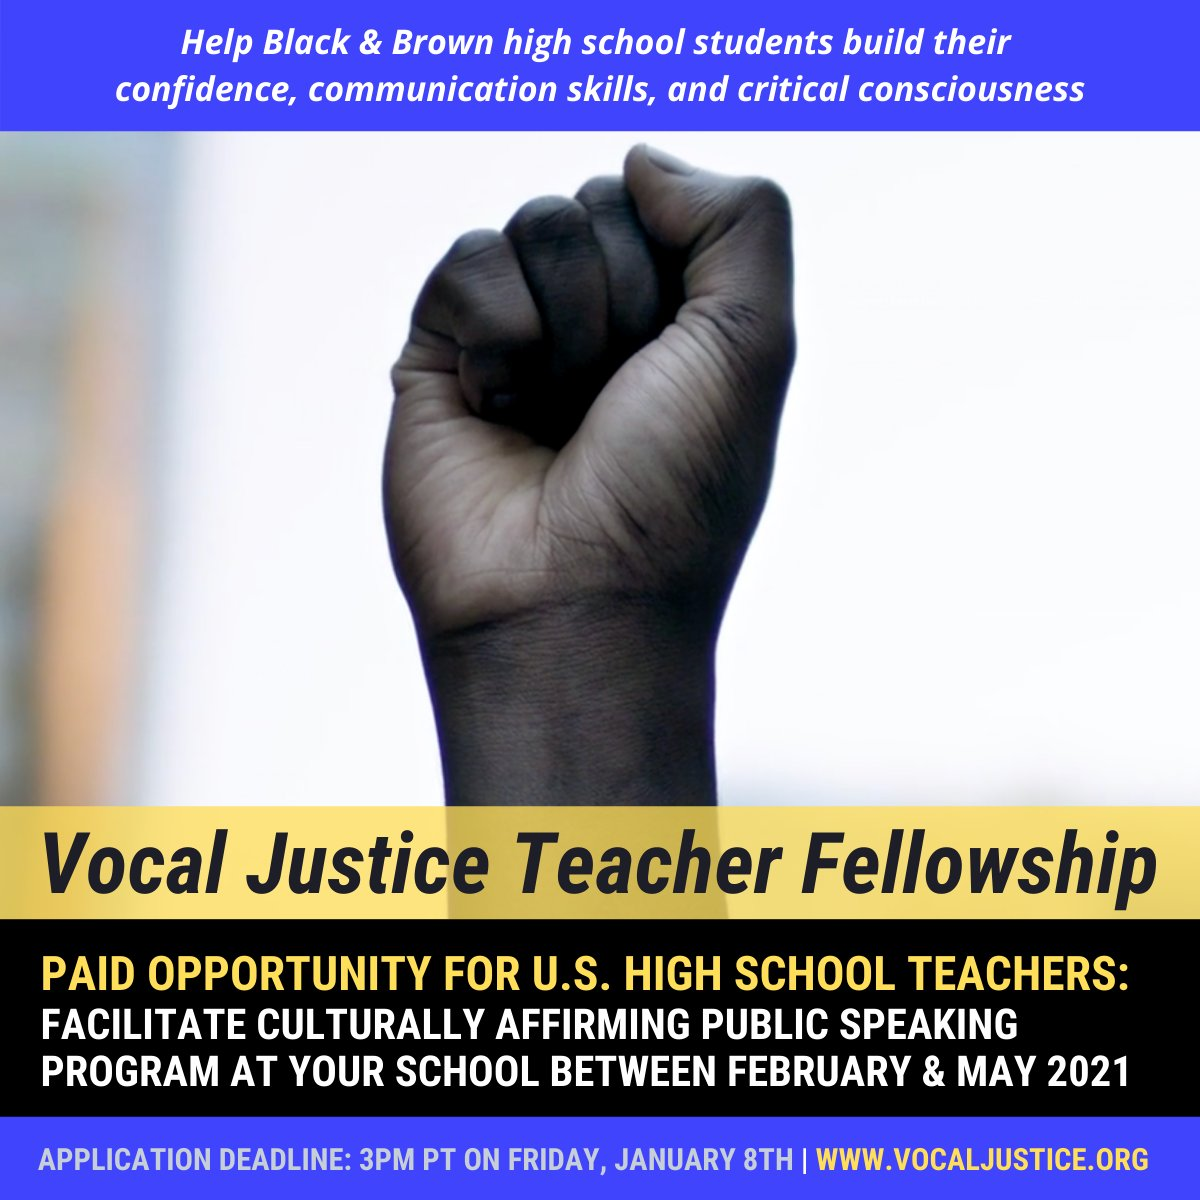 .@vocal_justice, founded by #ChengFellow @shawonj, is seeking #teachers to implement a culturally affirming public speaking program within their schools. Applications due 1/8 at 3pm PT. Learn more about this paid opportunity + apply here:  #SocialJustice